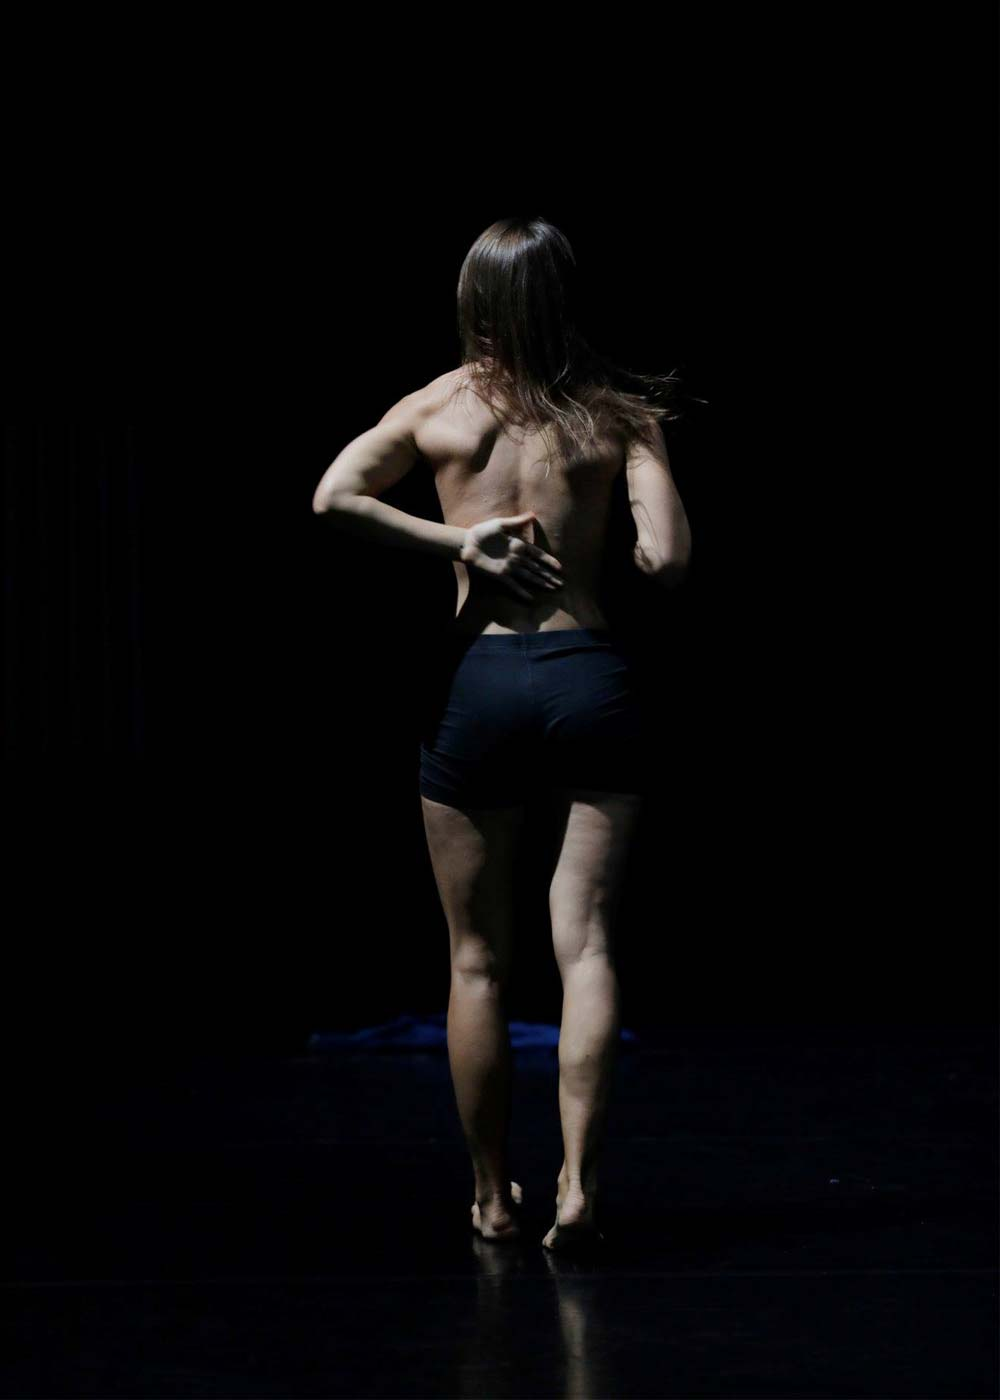 Anna Kempin captured during her InBetWeEn A Shock dance performance, displaying her muscular back